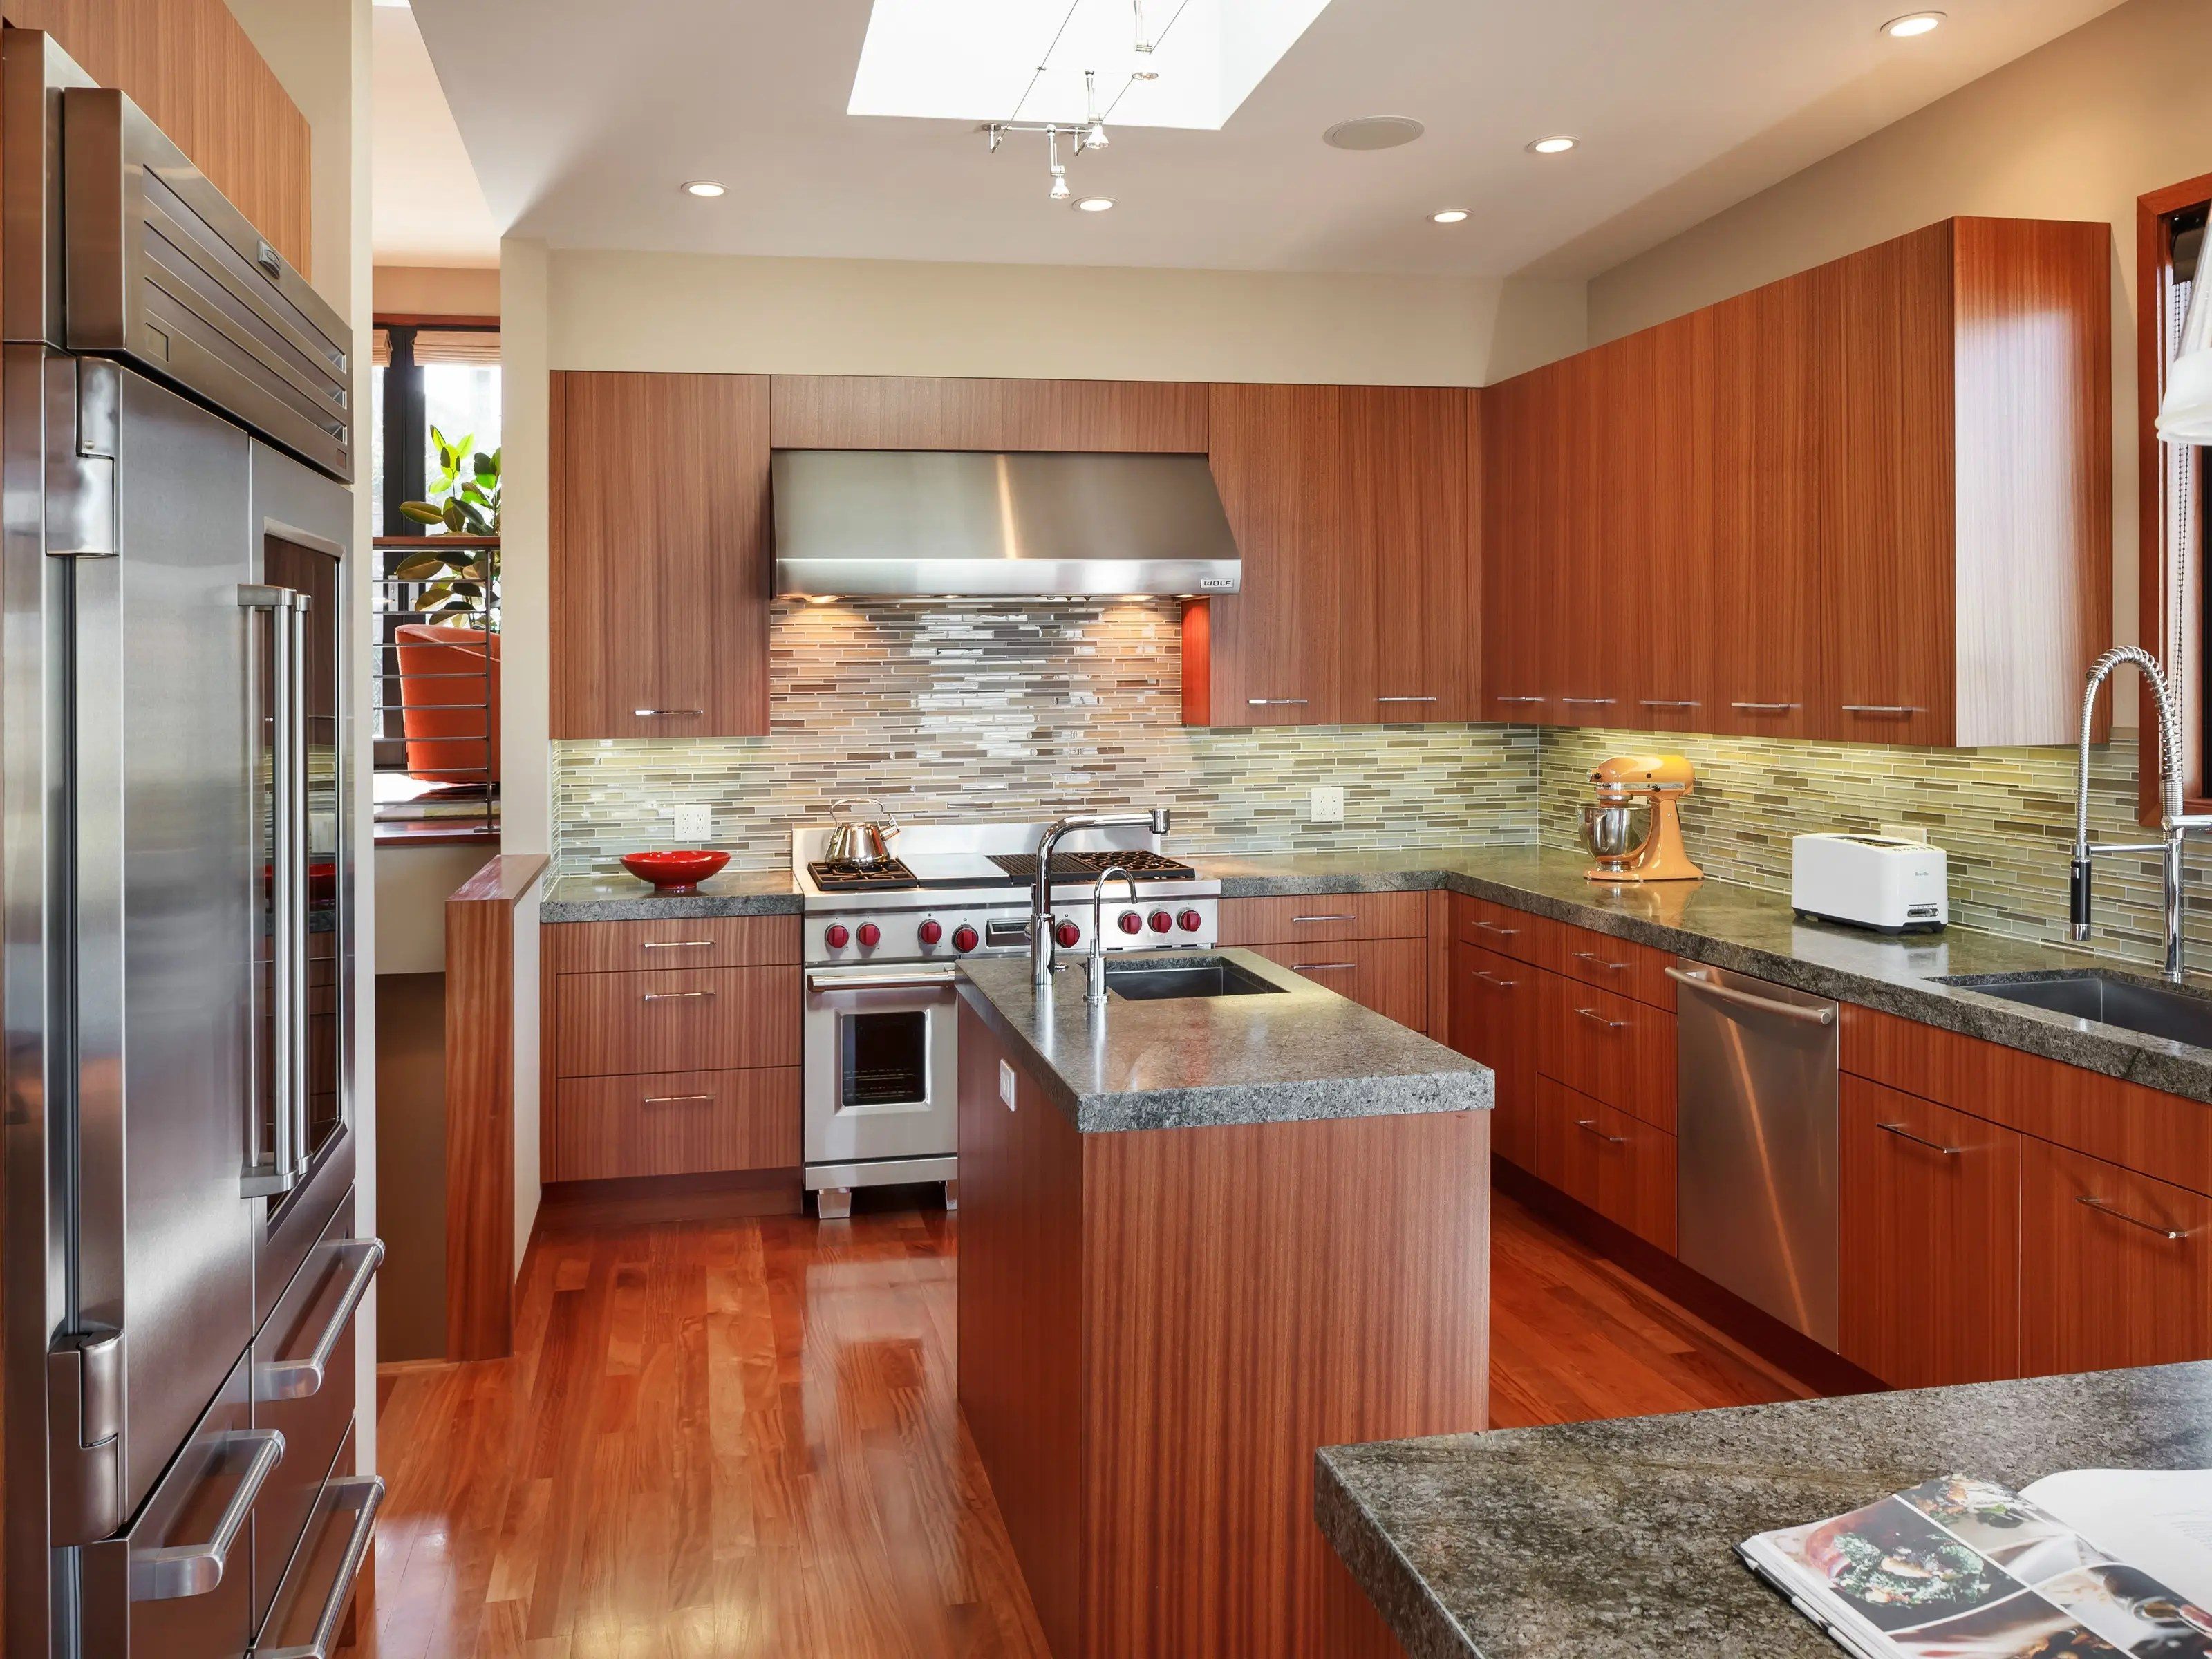 The kitchen is built for cooks, with plenty of storage space and a prep island with a sink in the center.